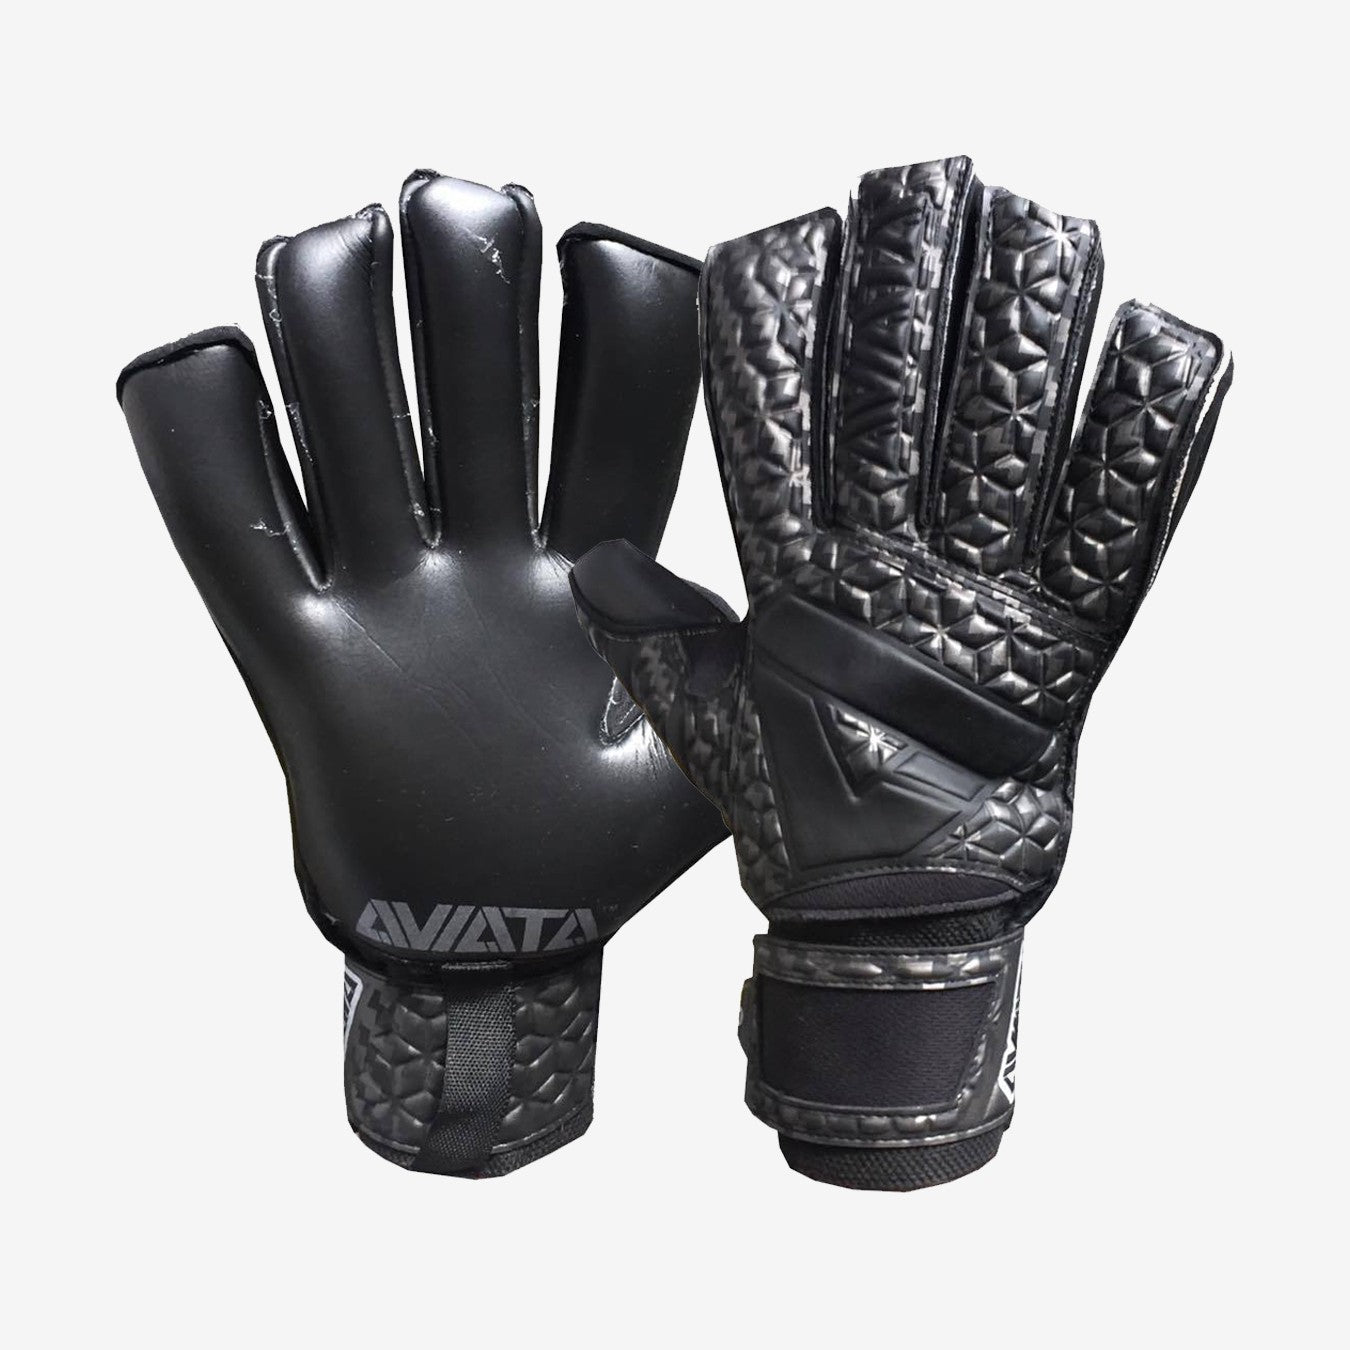 Viper Carbon Fibre V7 Goalkeeper Gloves - Black